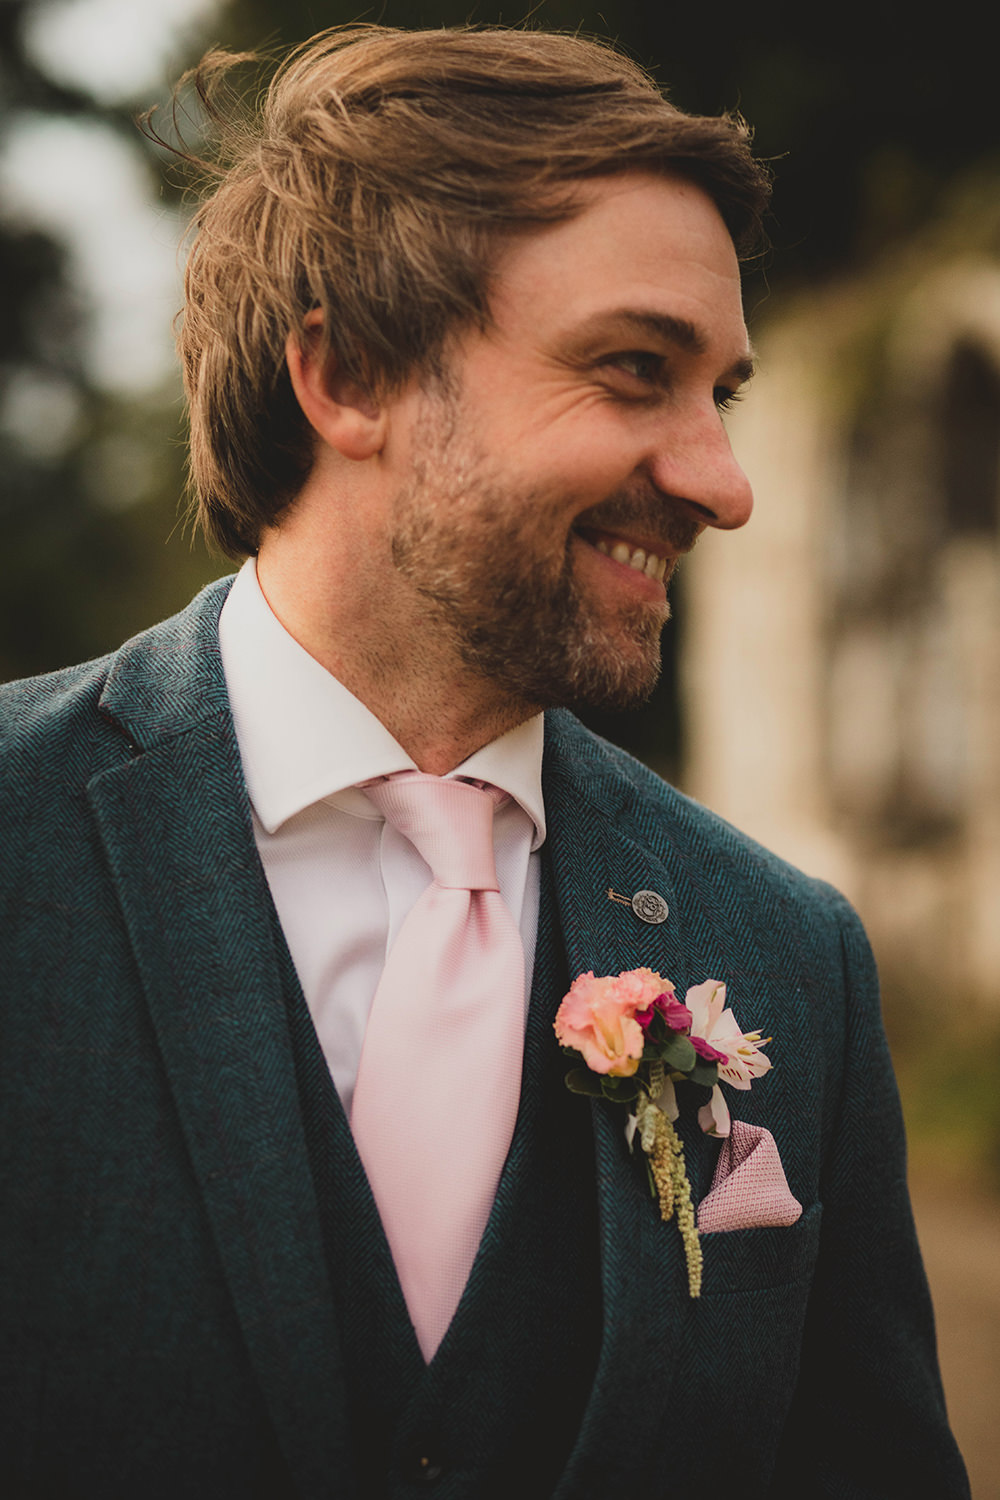 Jervaulx Abbey Wedding Ideas Laura Adams Photography Groom Suit Blue Pink Tie Buttonhole Flowers